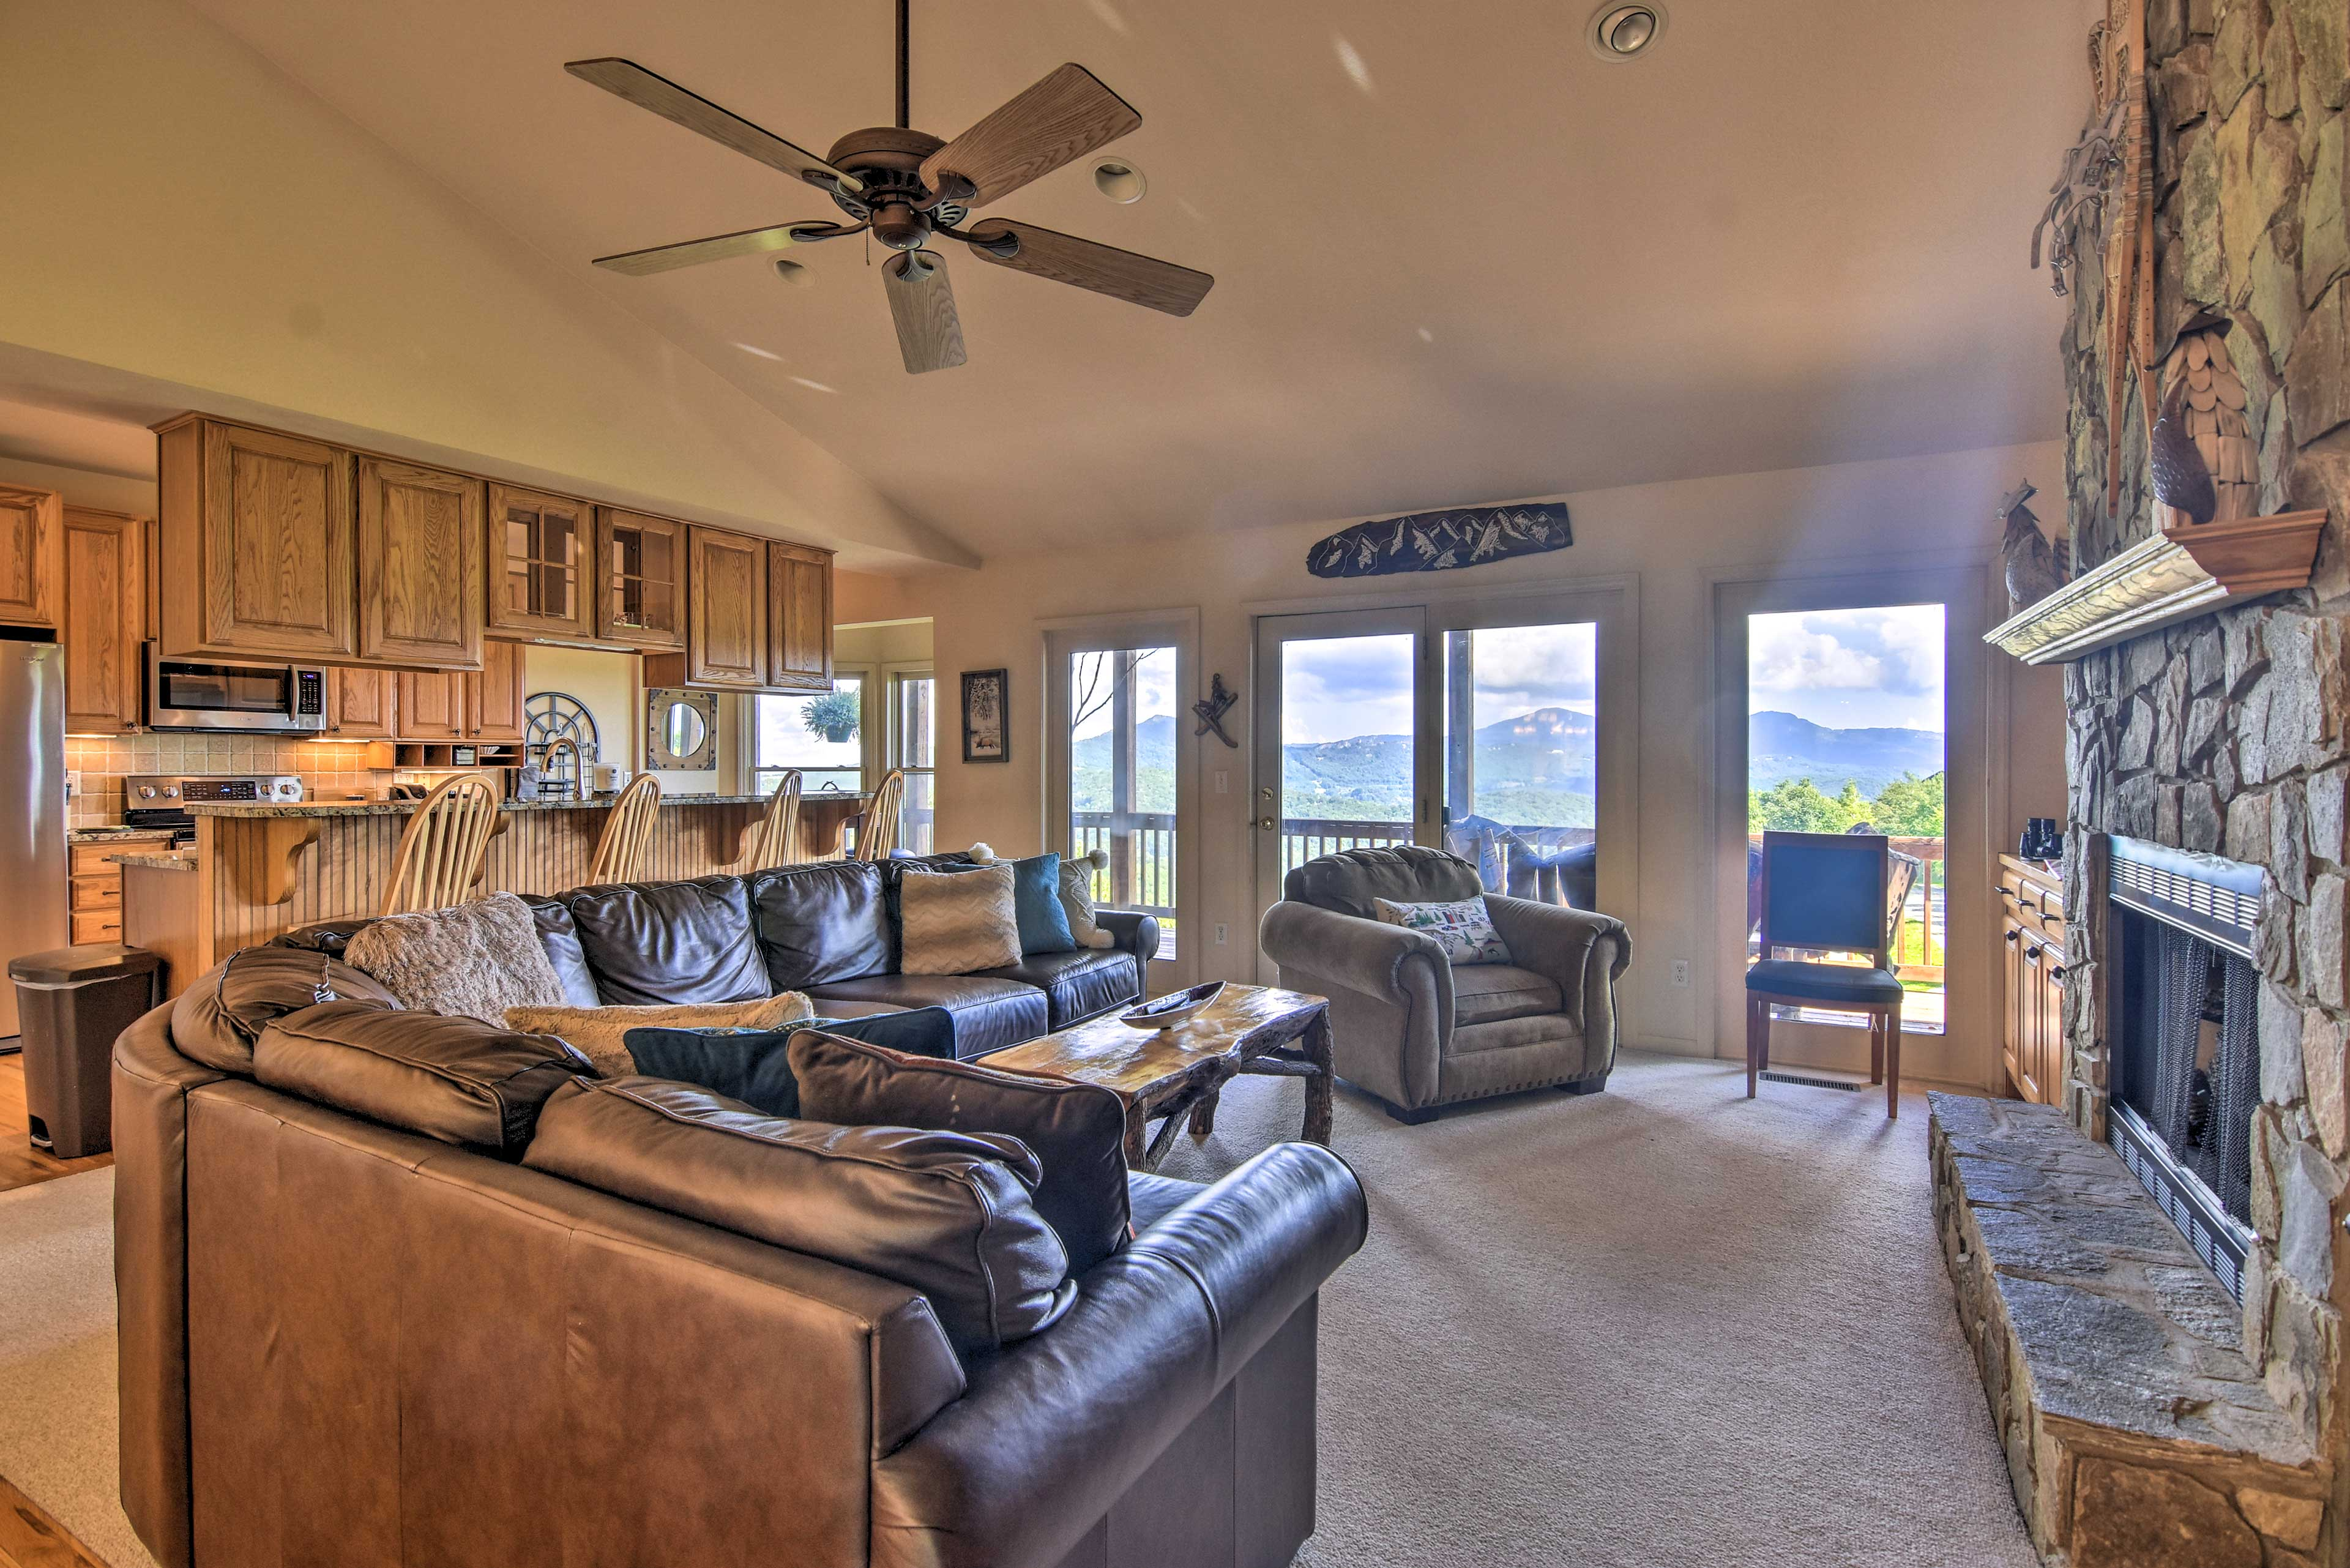 Enjoy stunning mountain views from inside or out.